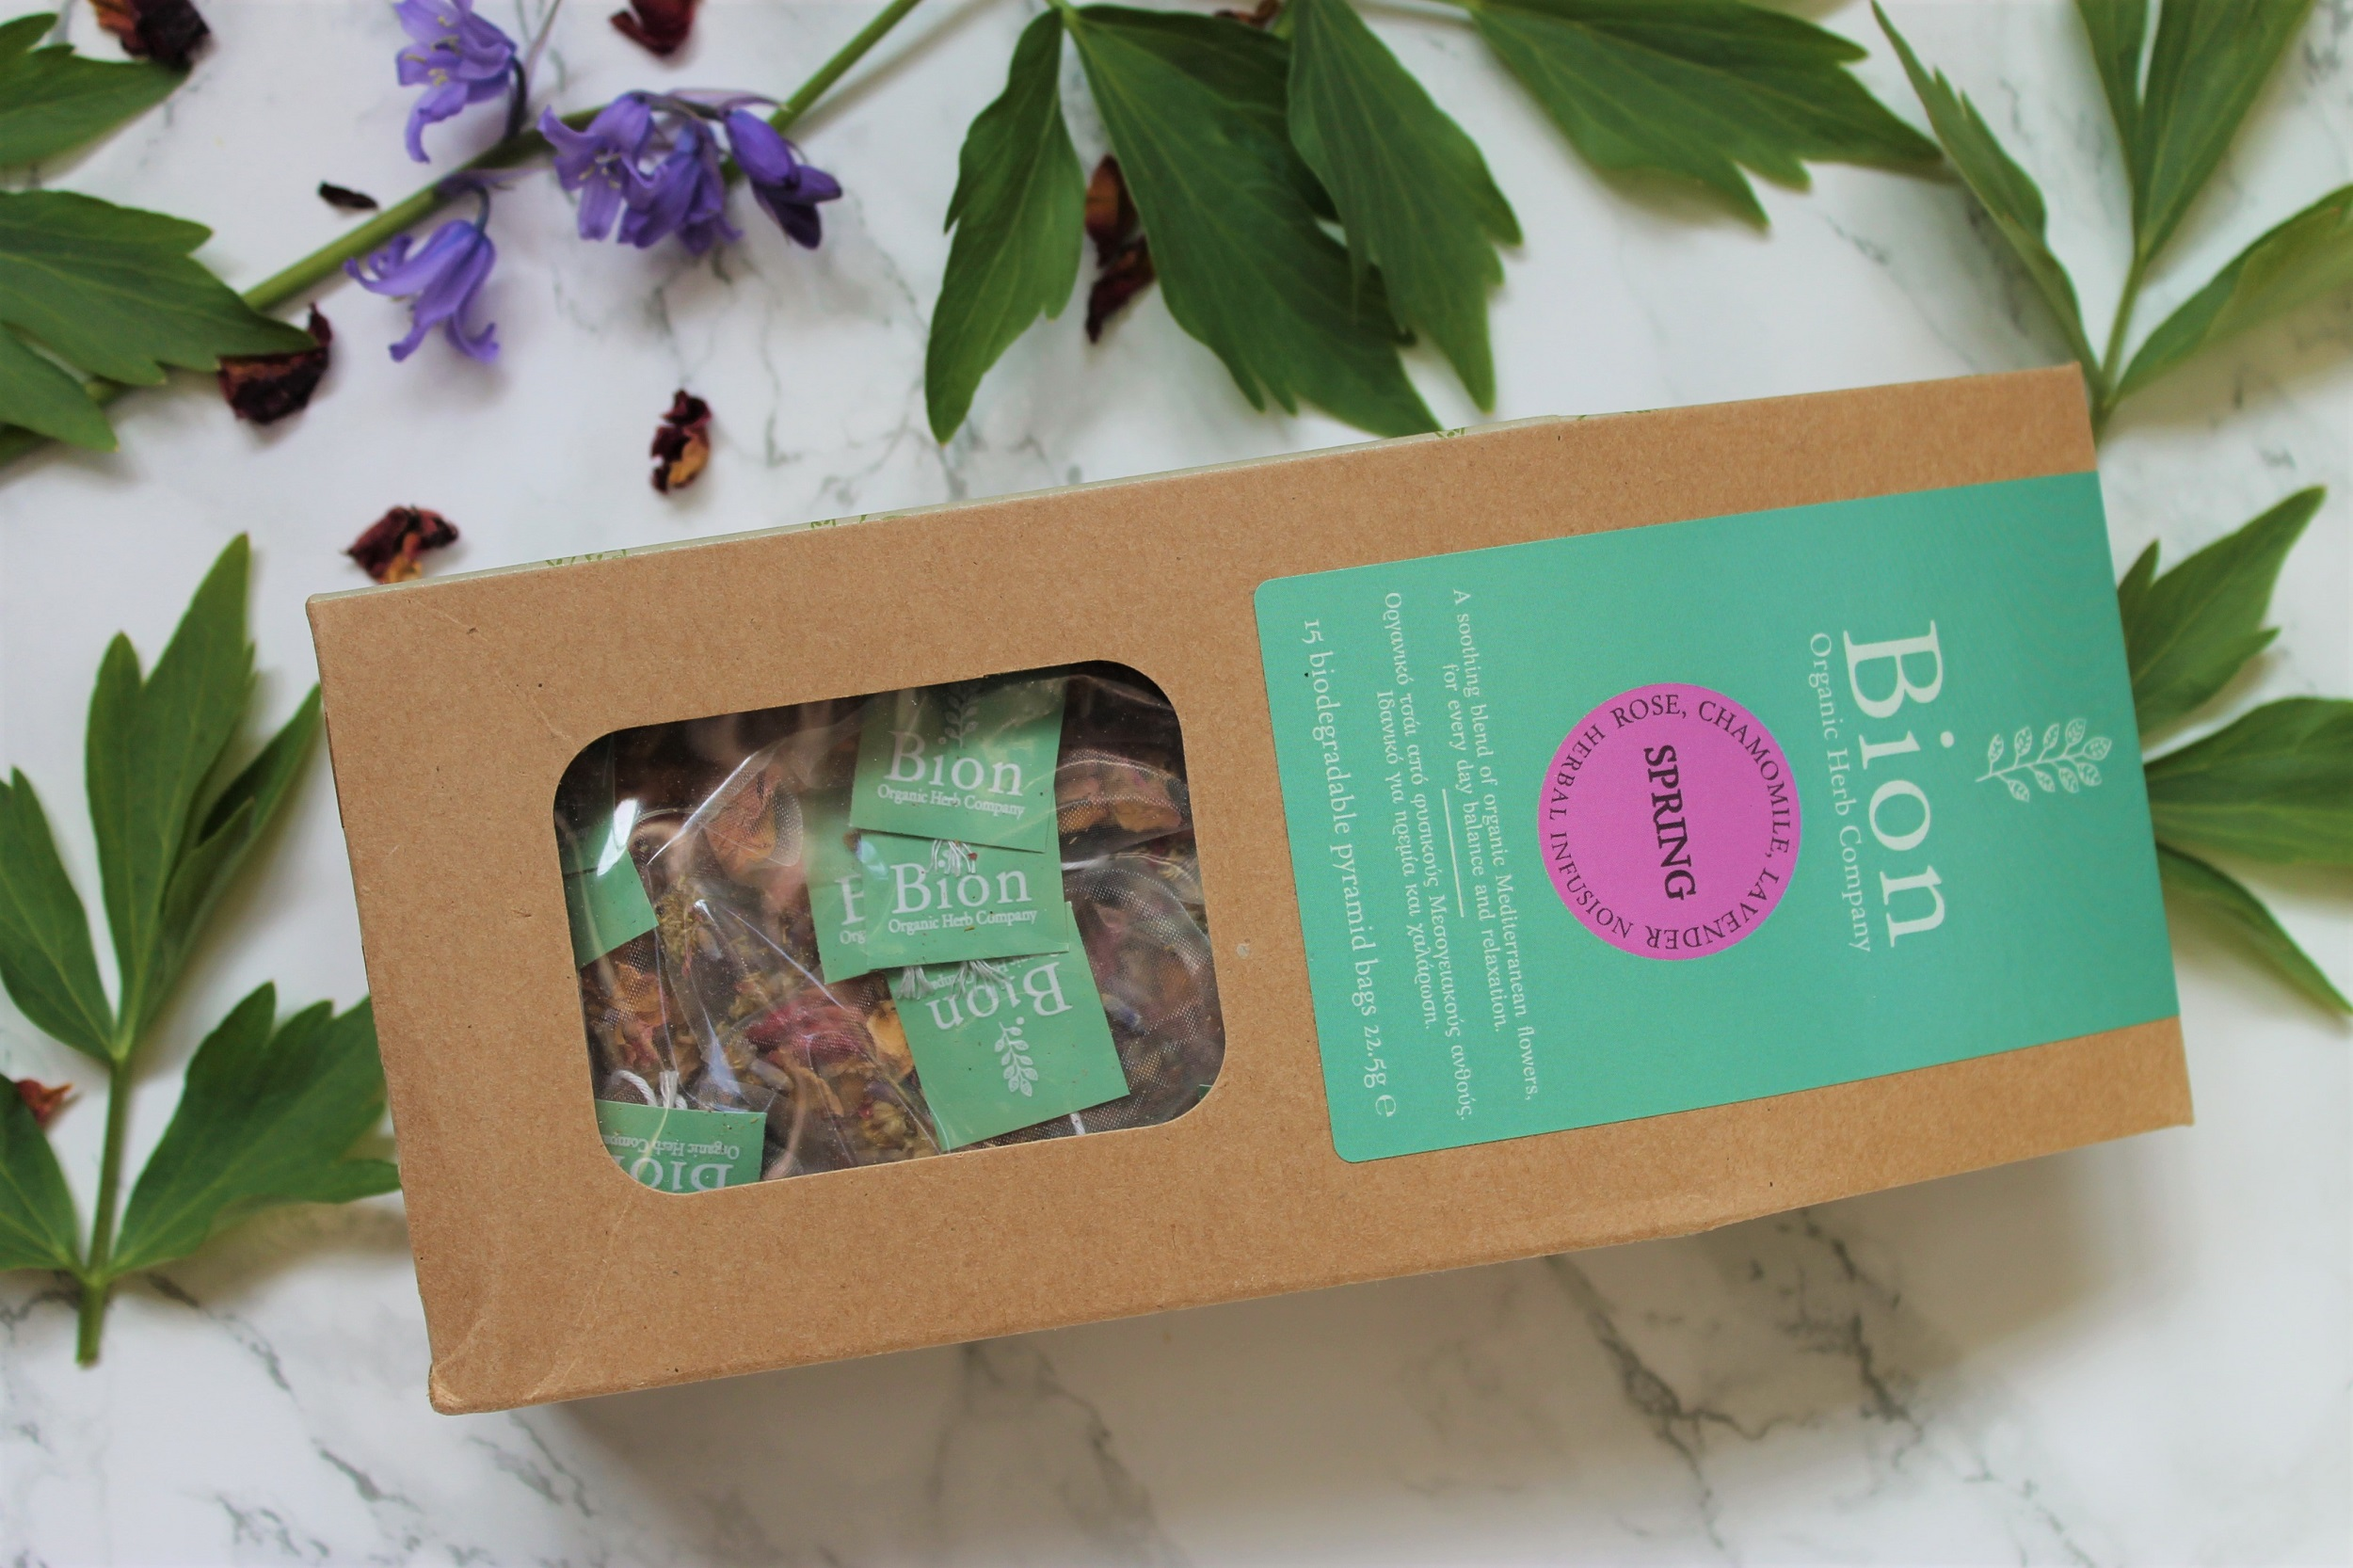 bion floral infusion